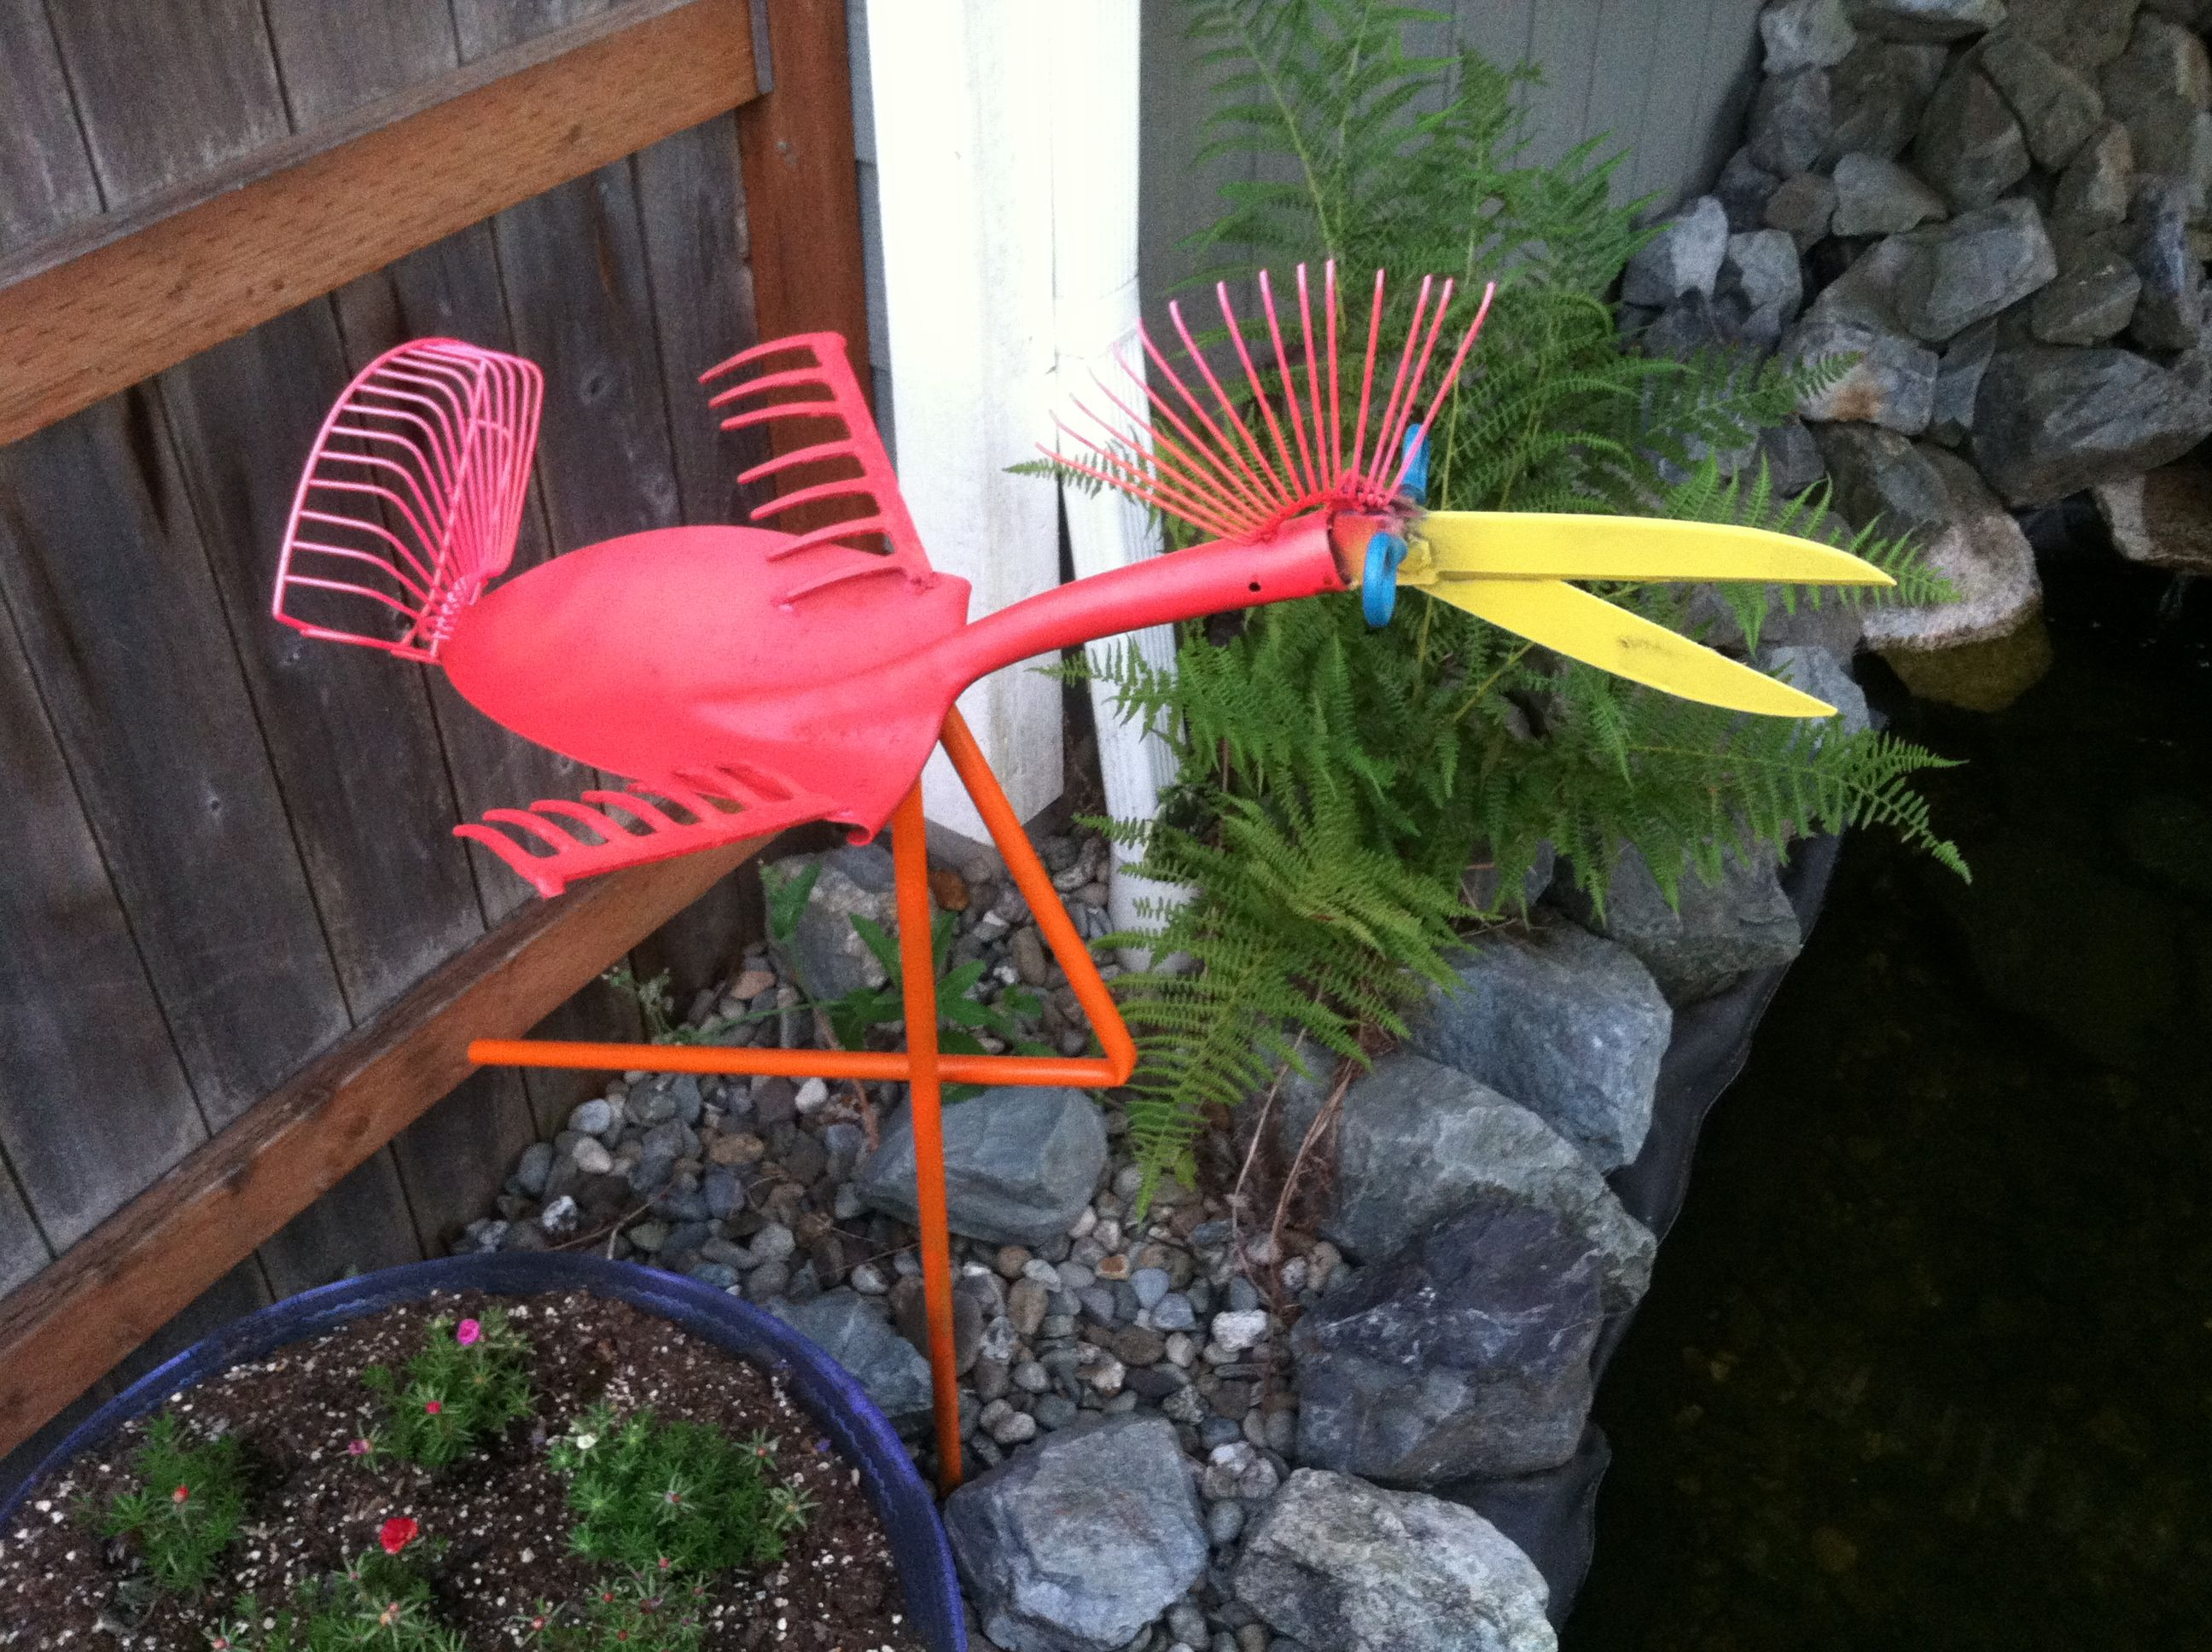 Shovel shears rake stork or flamingo yard pond art metal for Wire yard art